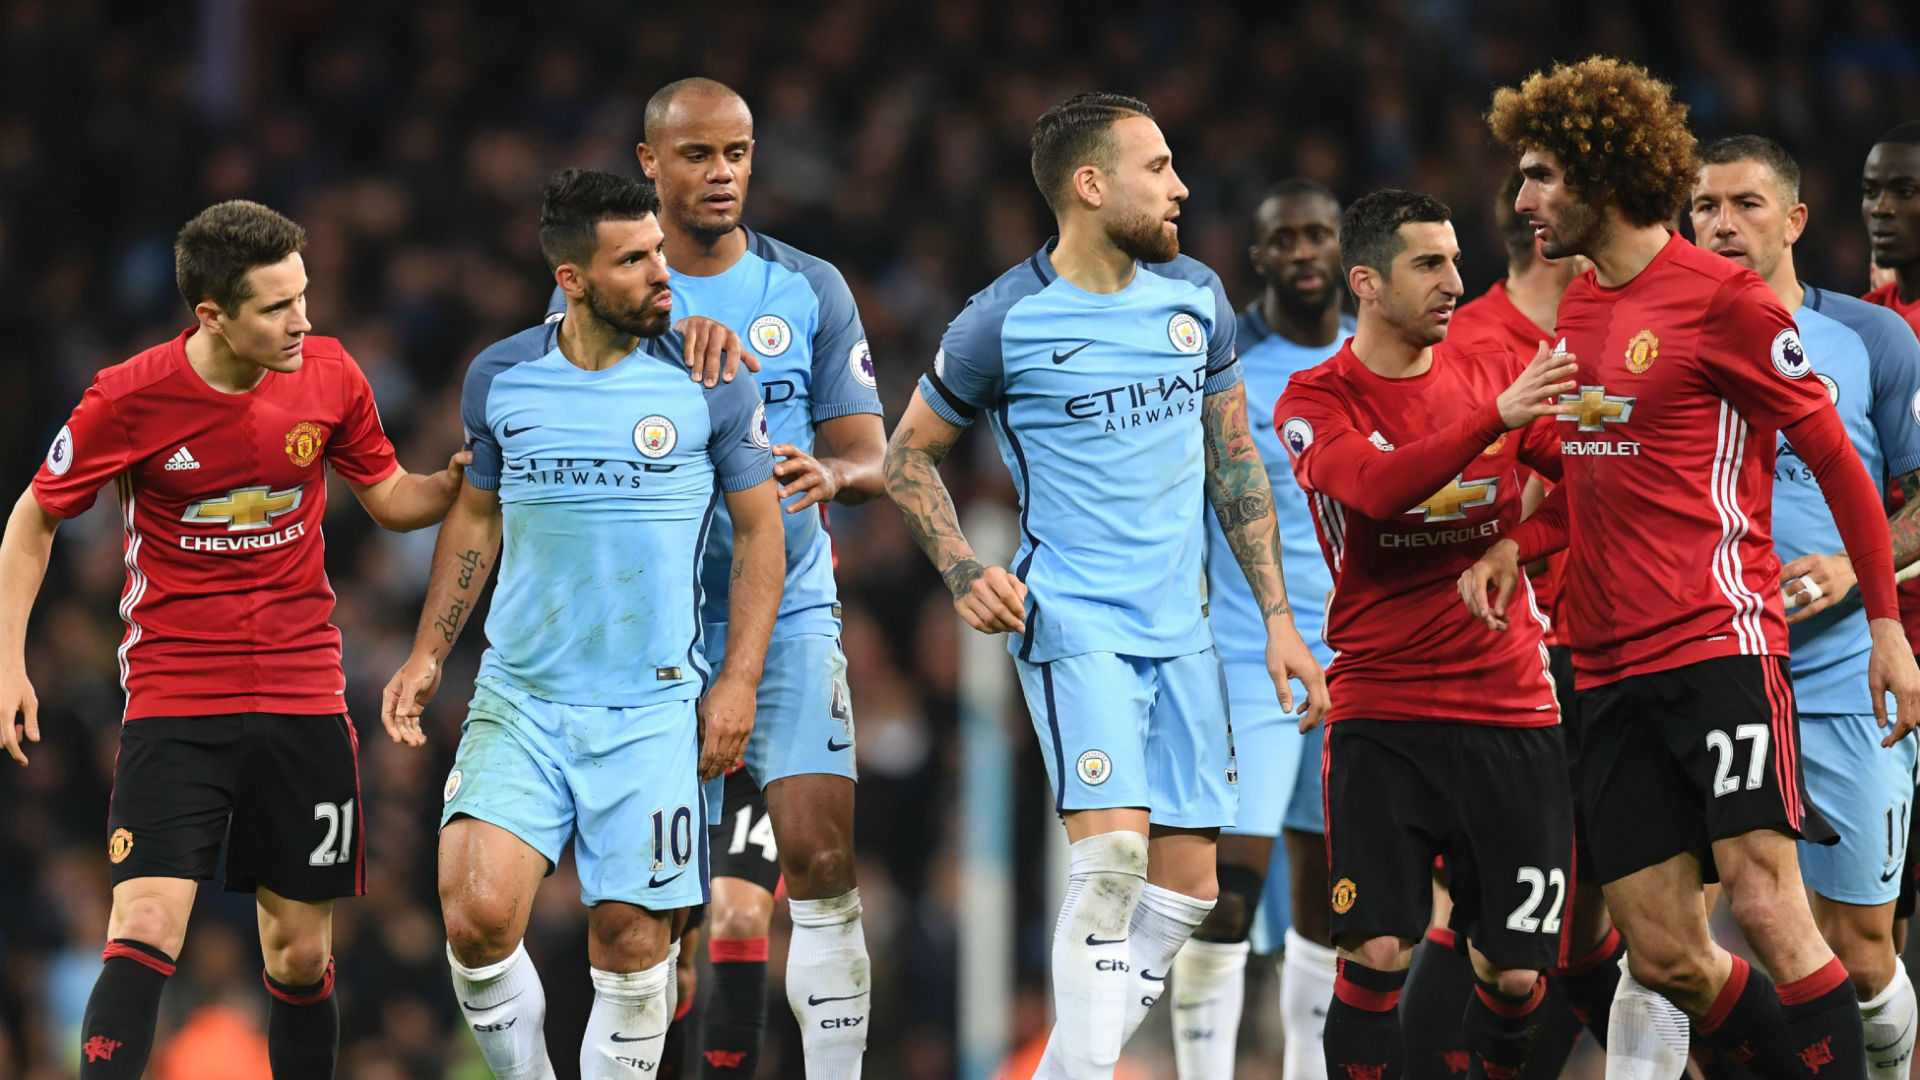 Manchester United Vs Manchester City Tv Channel Free